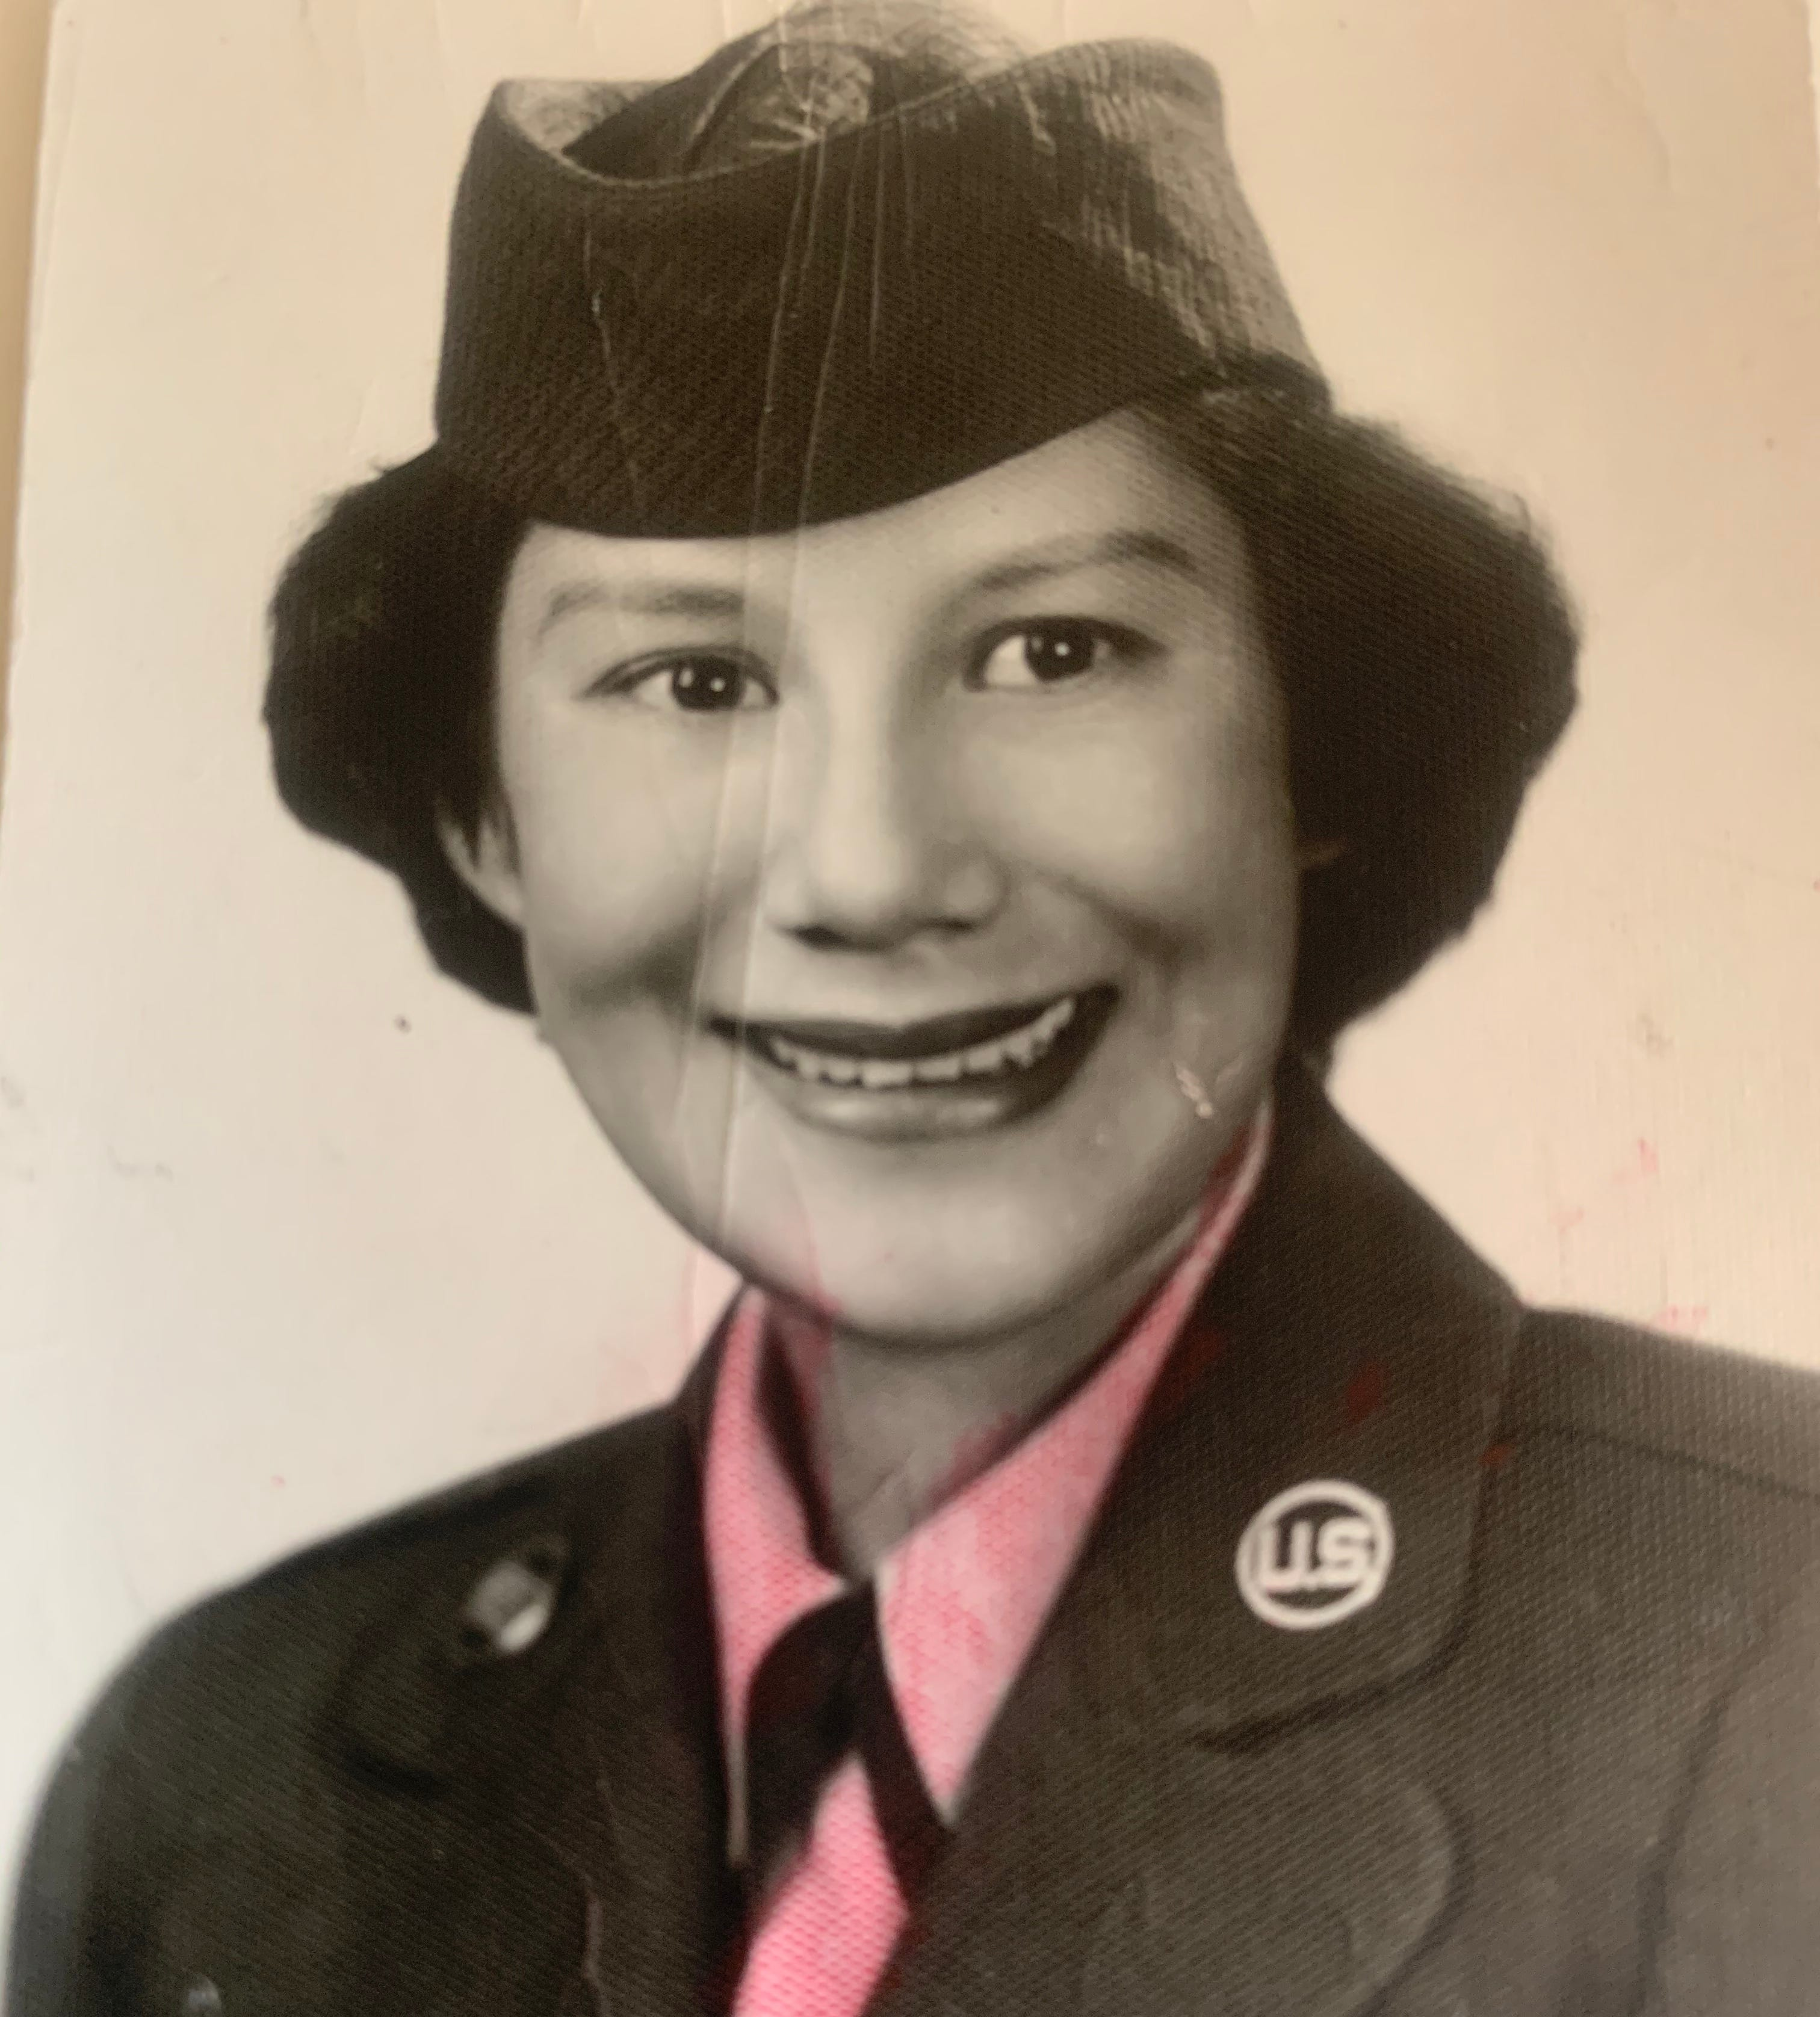 Maria Sargent, who died May 22, served in the Air Force for two years as a young woman and later worked for 20 years with the U.S. Postal Service.